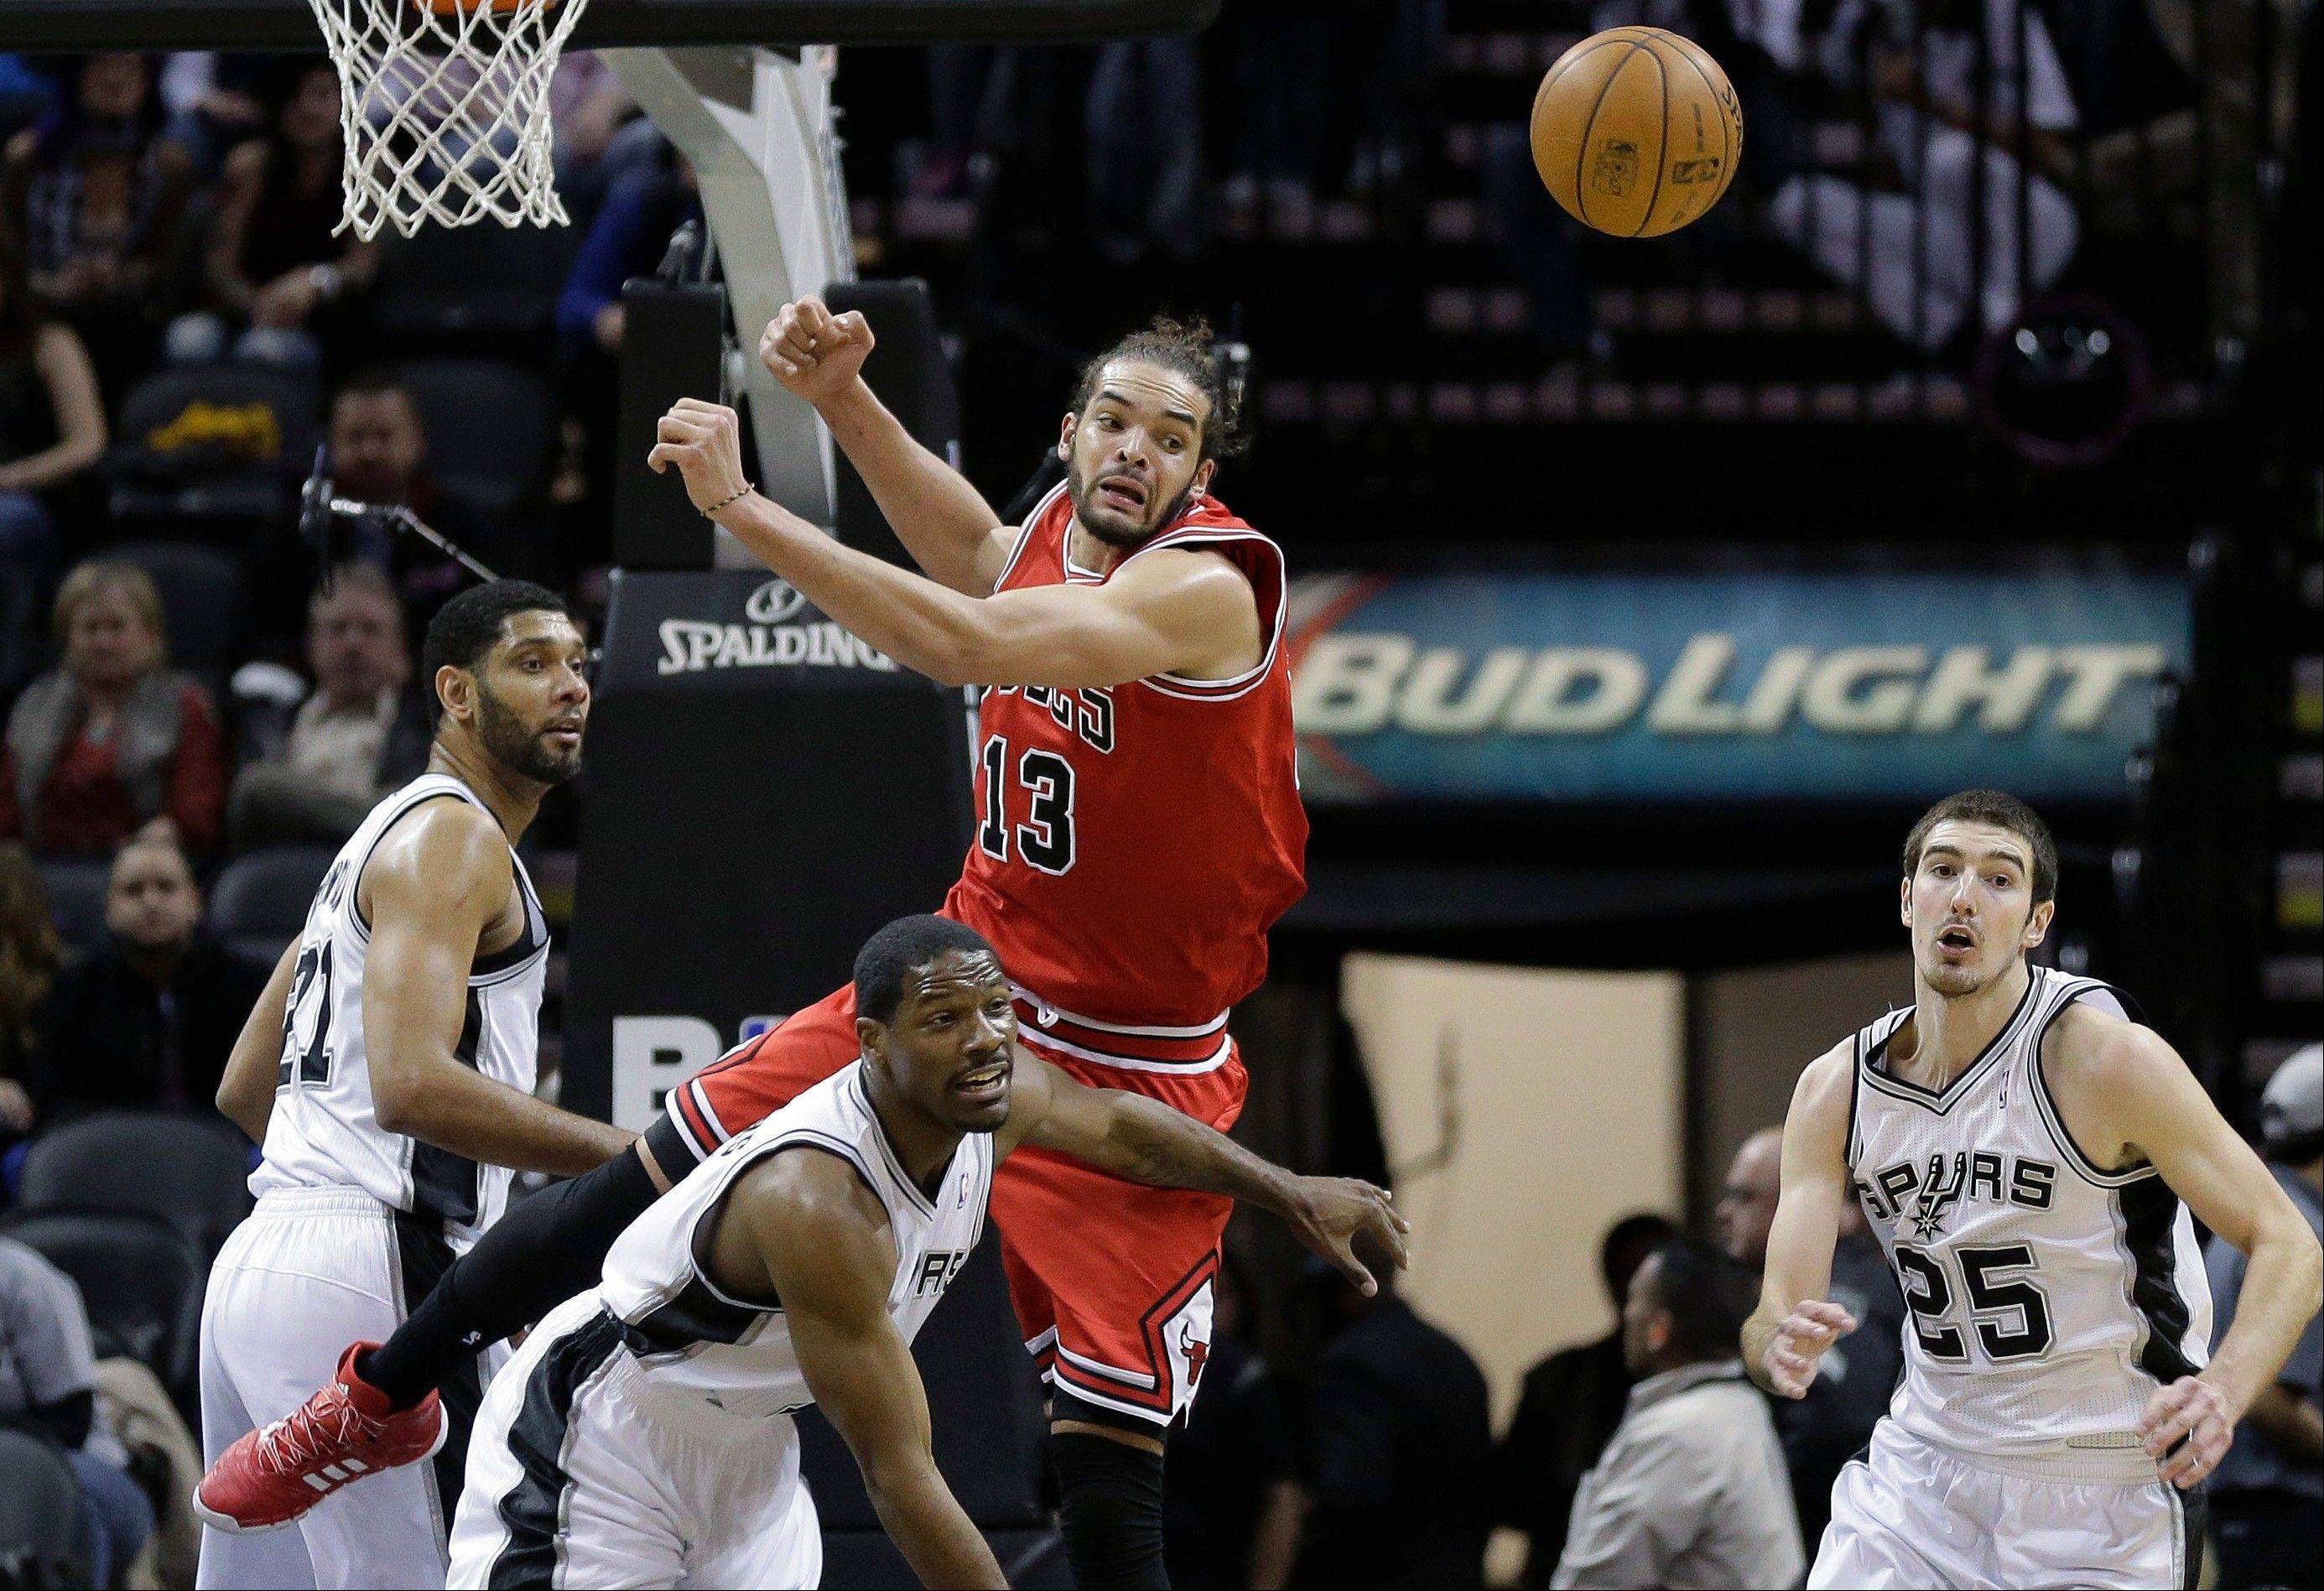 The Bulls� Joakim Noah jumps over the Spurs� Othyus Jeffers, center, for a loose ball during the first half of Wednesday�s game in San Antonio.